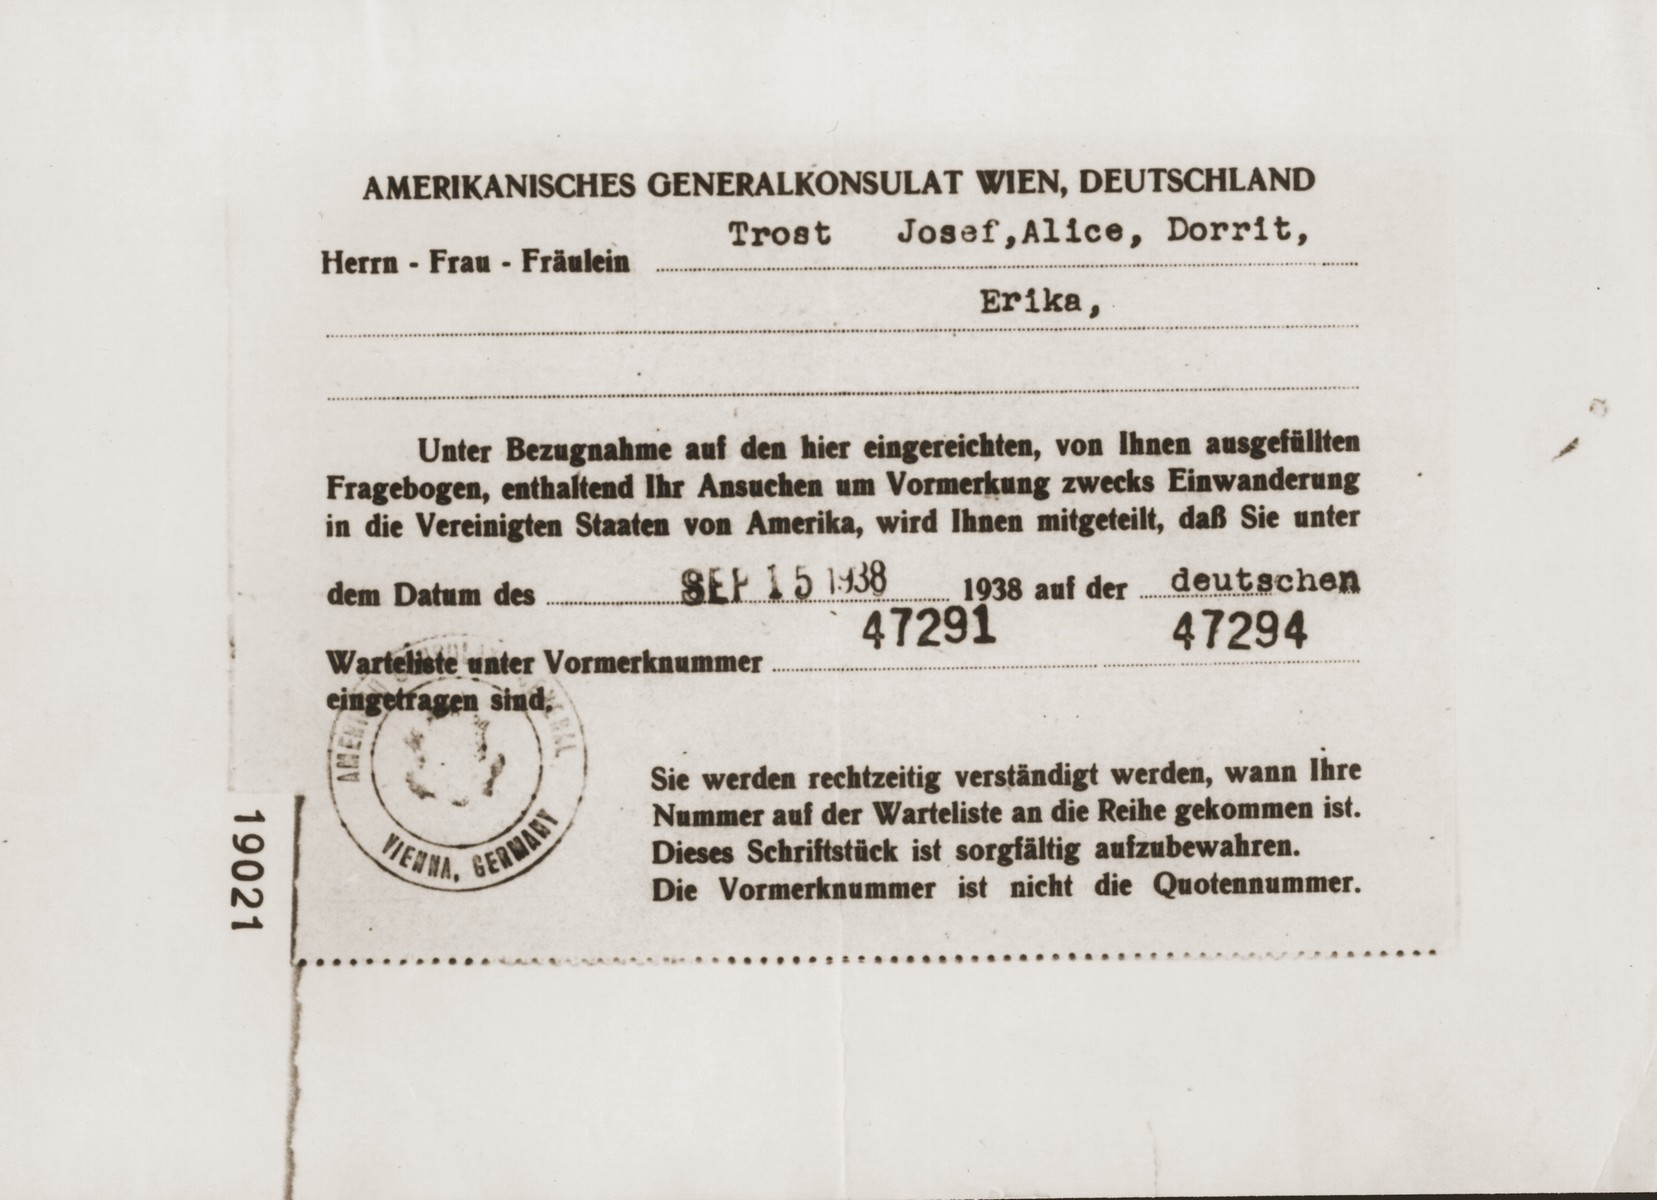 Document from the American Consul-General in Vienna certifying that the Trost family, consisting of Josef, Alice, Dorrit, and Erika, applied for American visas on September 15, 1938 and have been placed on the waiting list with the numbers 47291-47294.